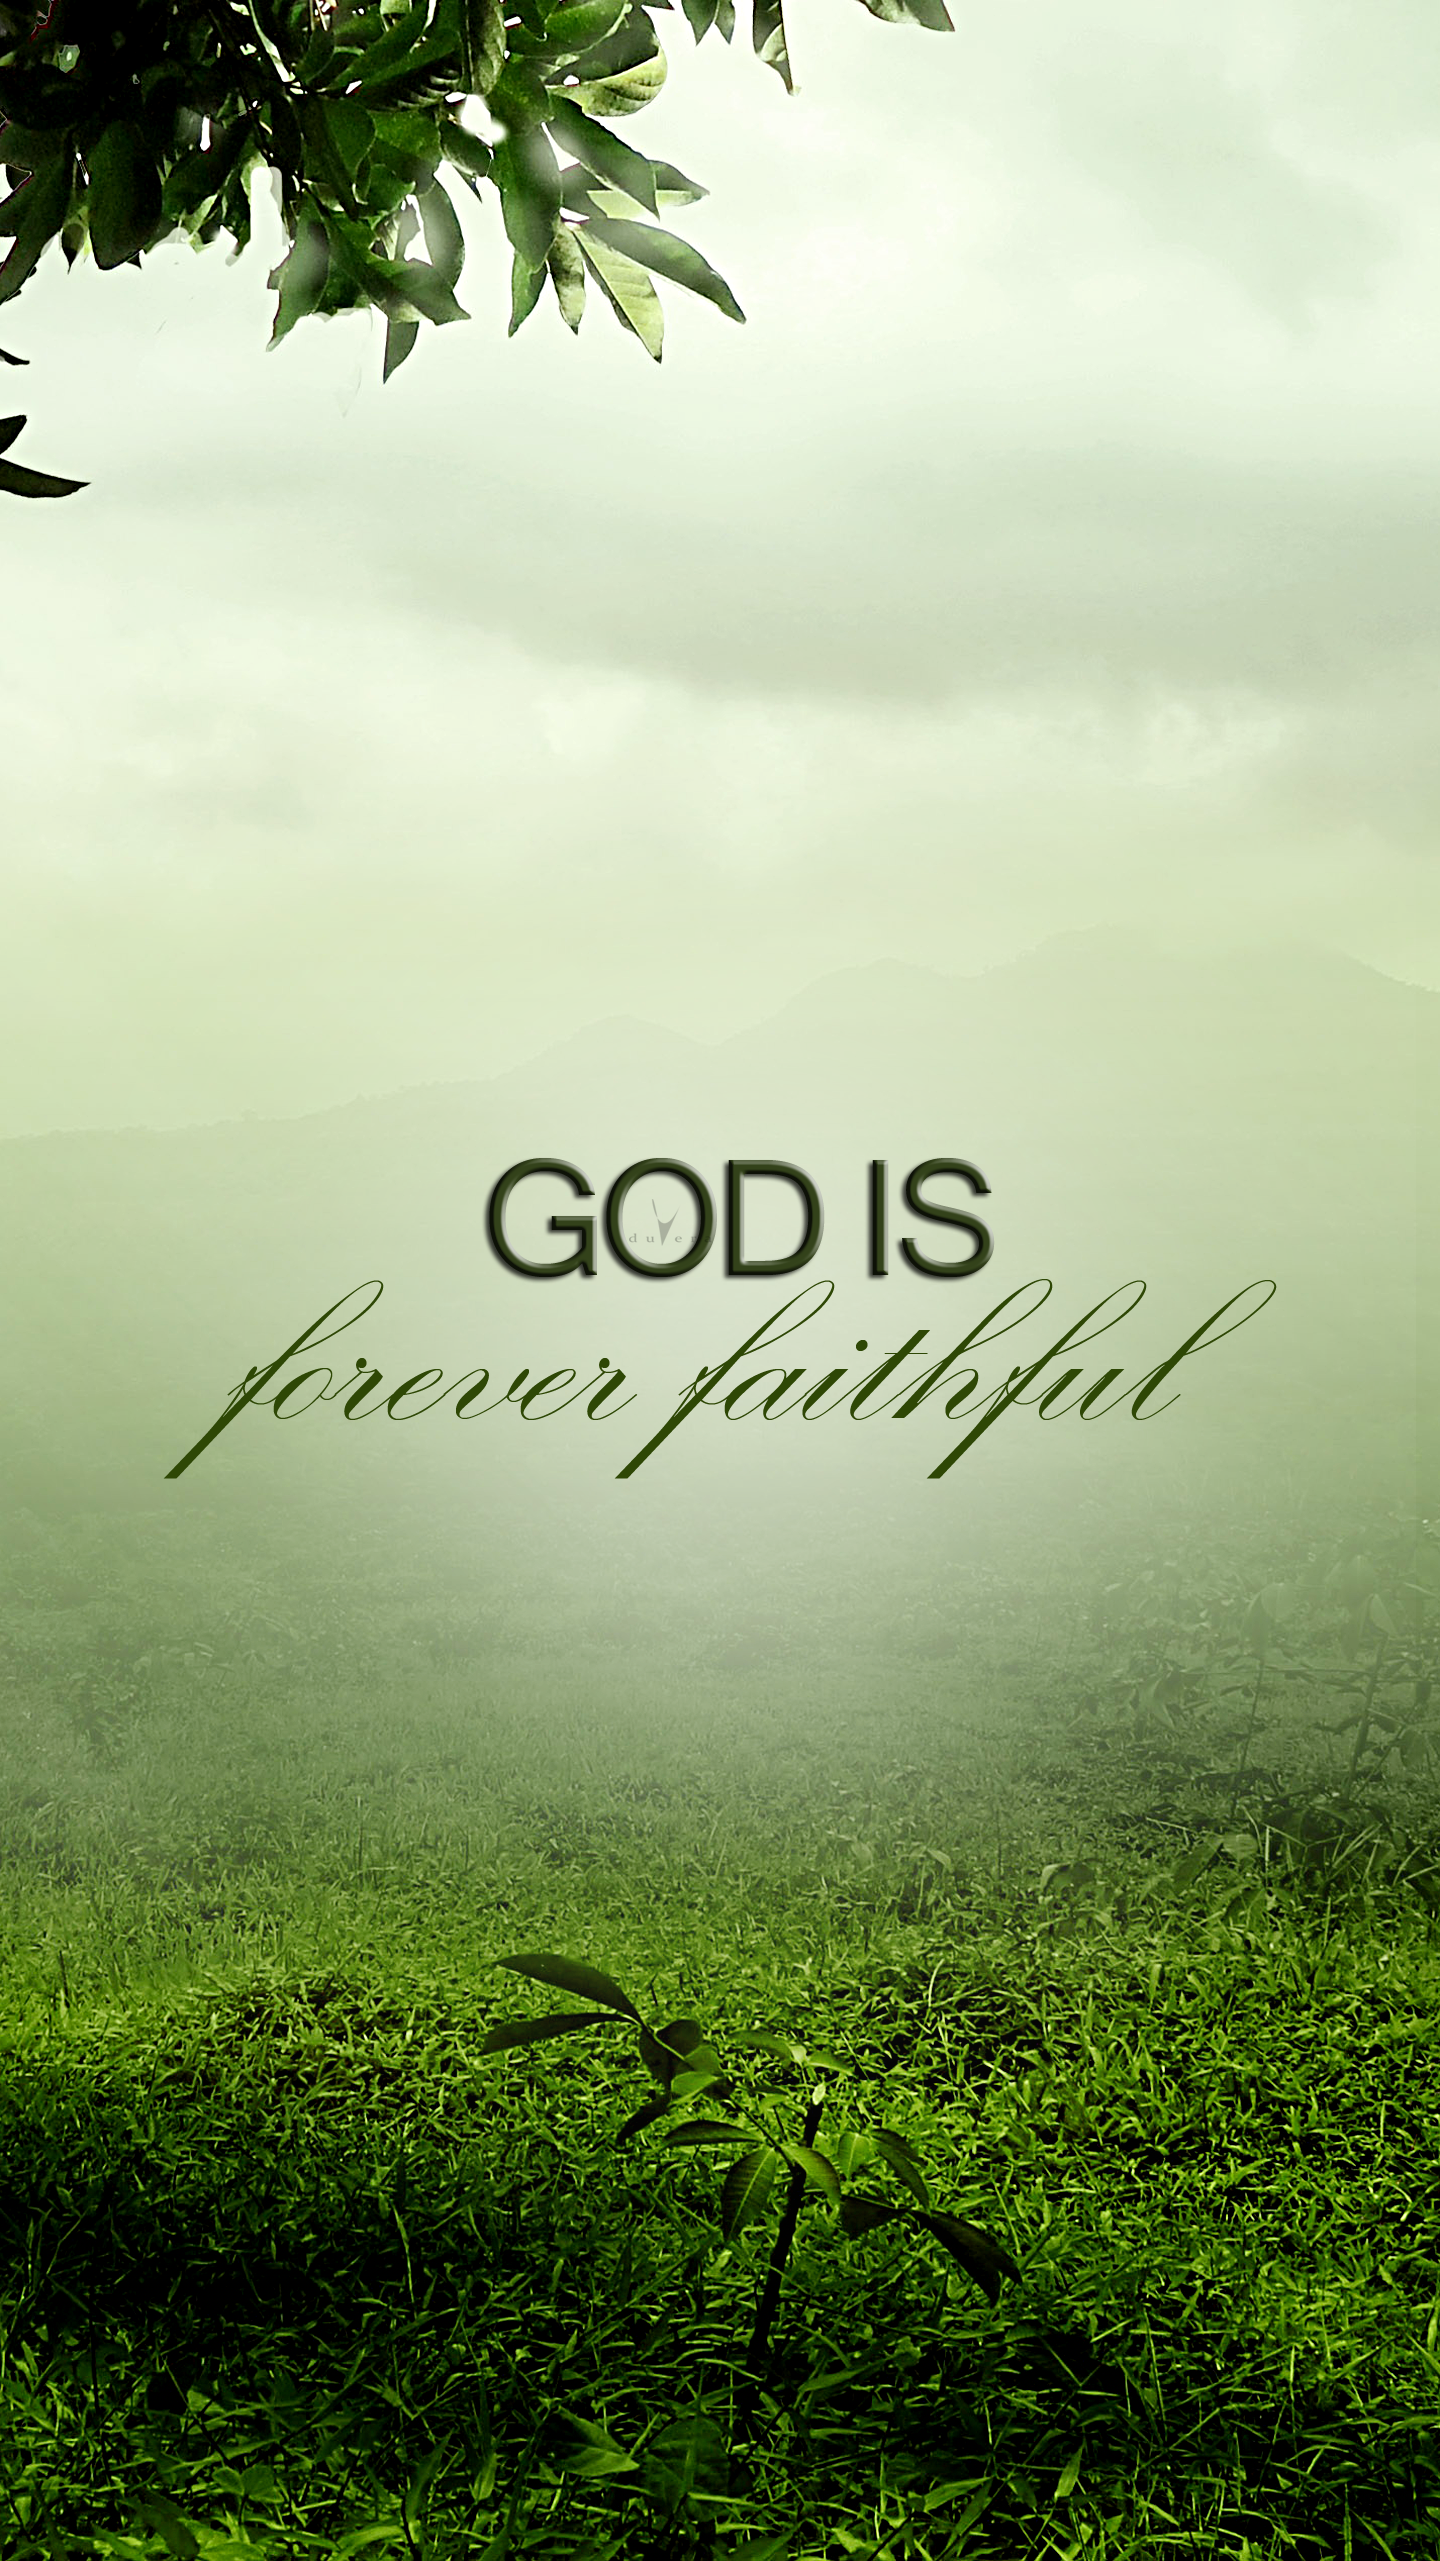 Christian Wallpaper Free Download For Mobile